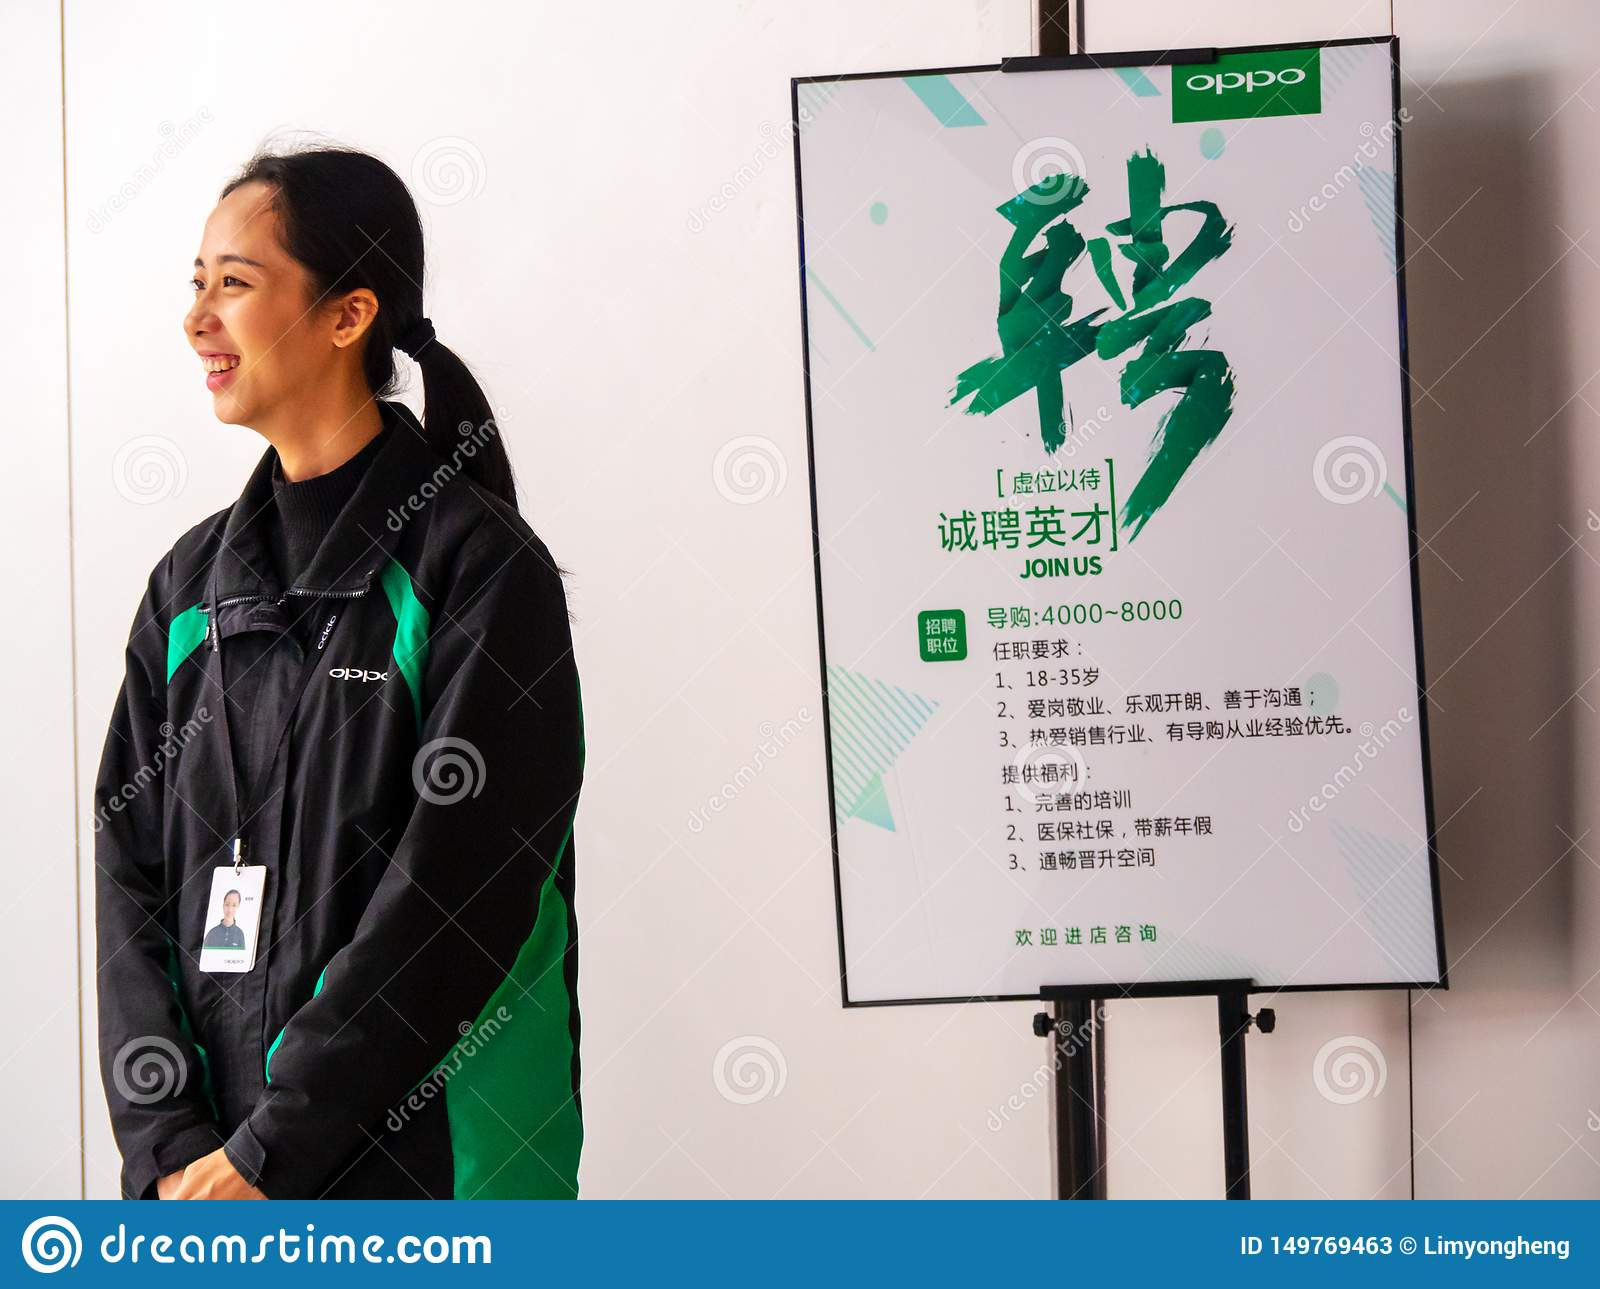 TIANHE, GUANGZHOU CITY, CHINA - 7 MAR 2019 - A smiling Oppo employee stands next to an staff recruitment poster seeking sales